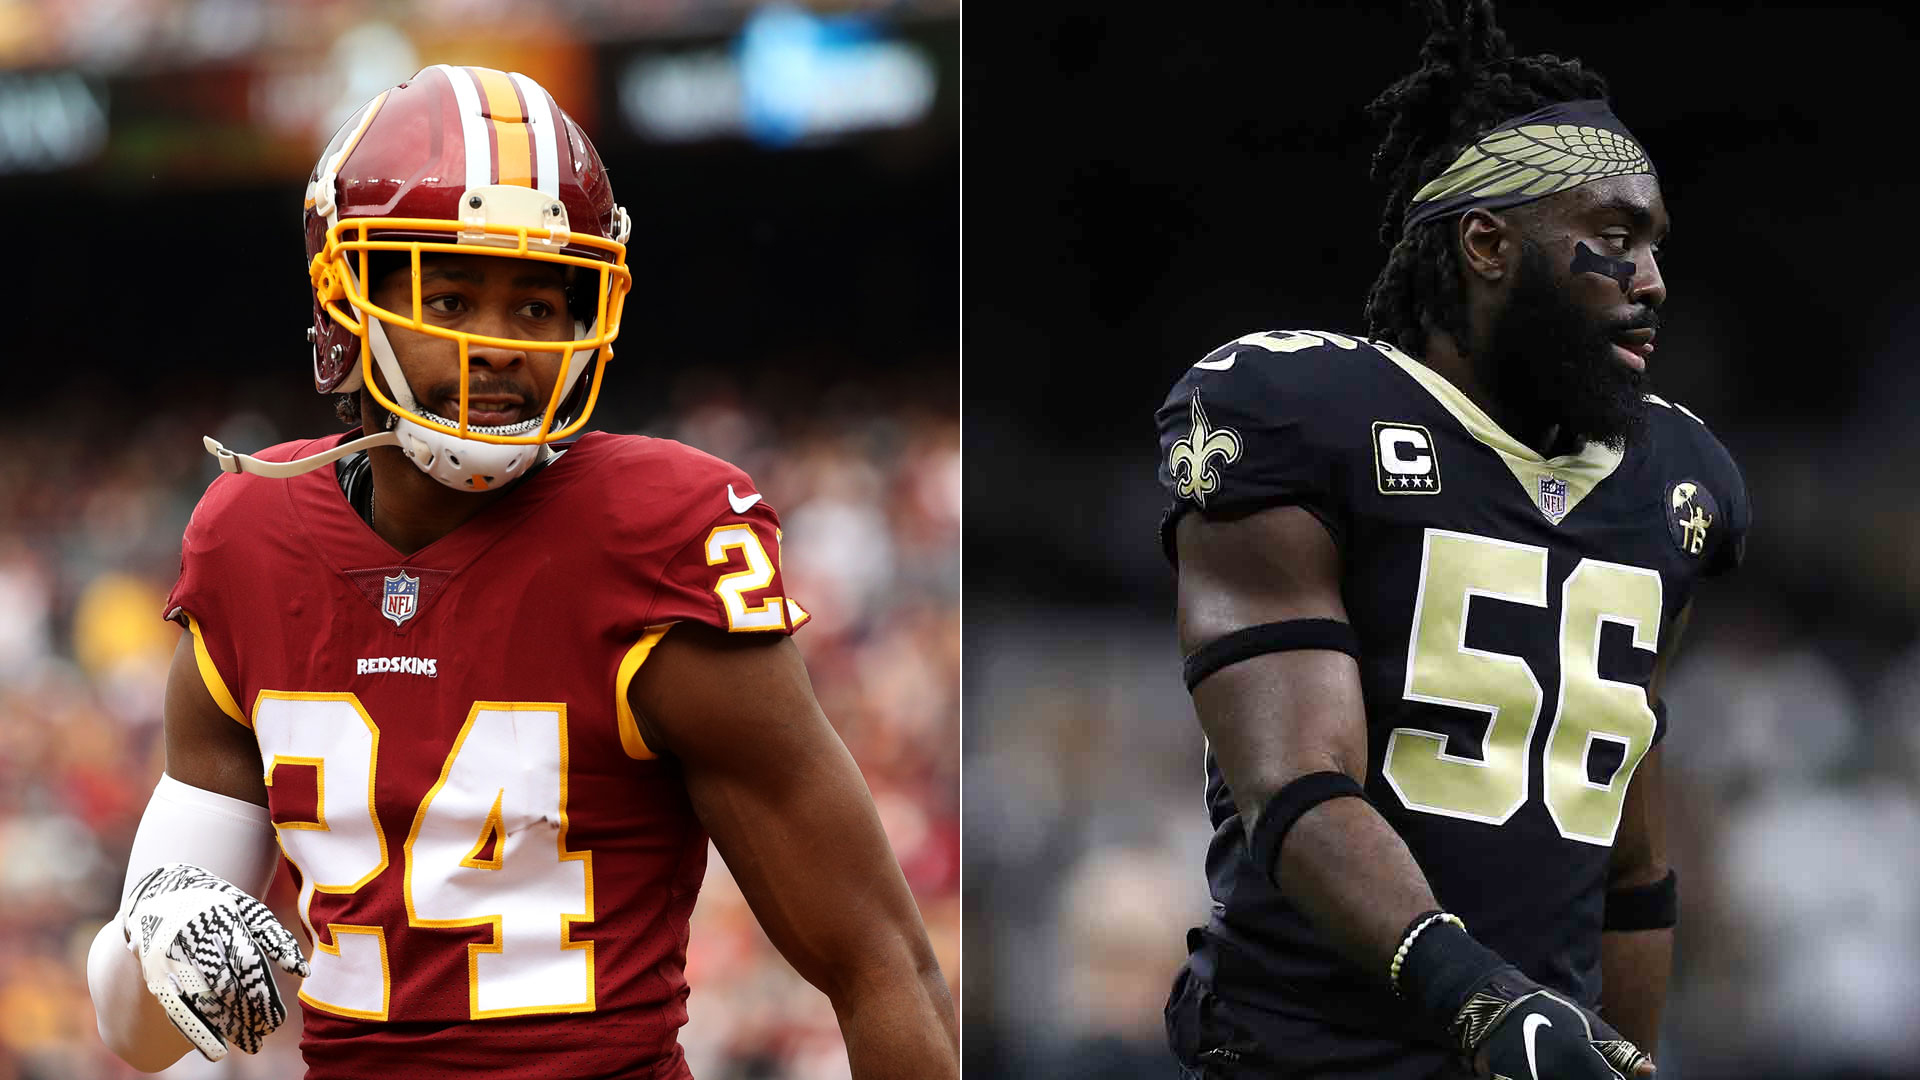 Cornerback Josh Norman of the Washington Redskins, left, and Demario Davis of the New Orleans Saints, right, are seen in file photos. (Credit: Patrick Smith / Getty Images and Chris Graythen / Getty Images)